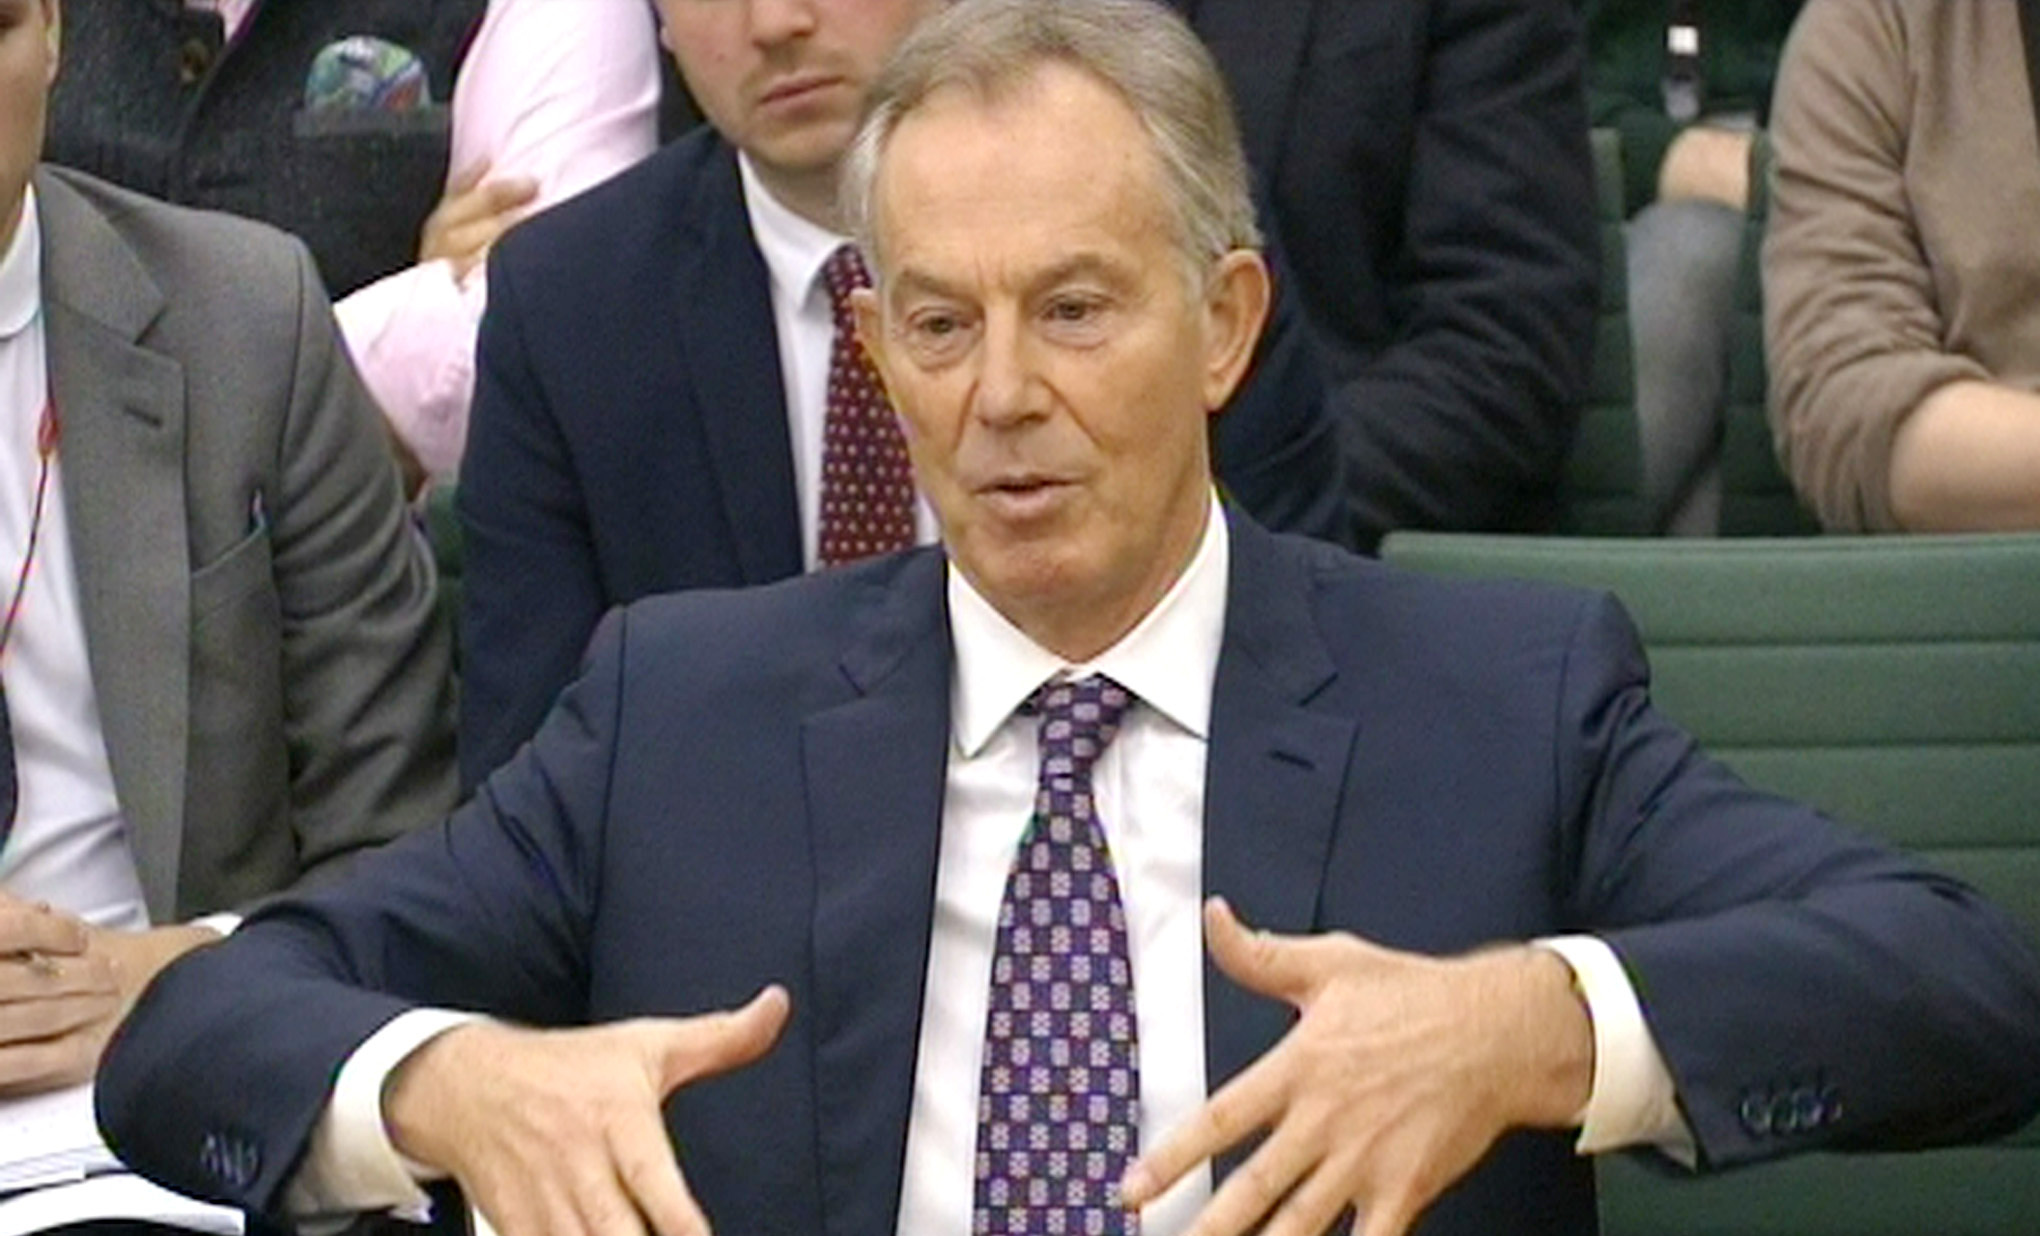 Tony Blair says engaging with Colonel Gaddafi stopped Libya building chemical and nuclear weapons